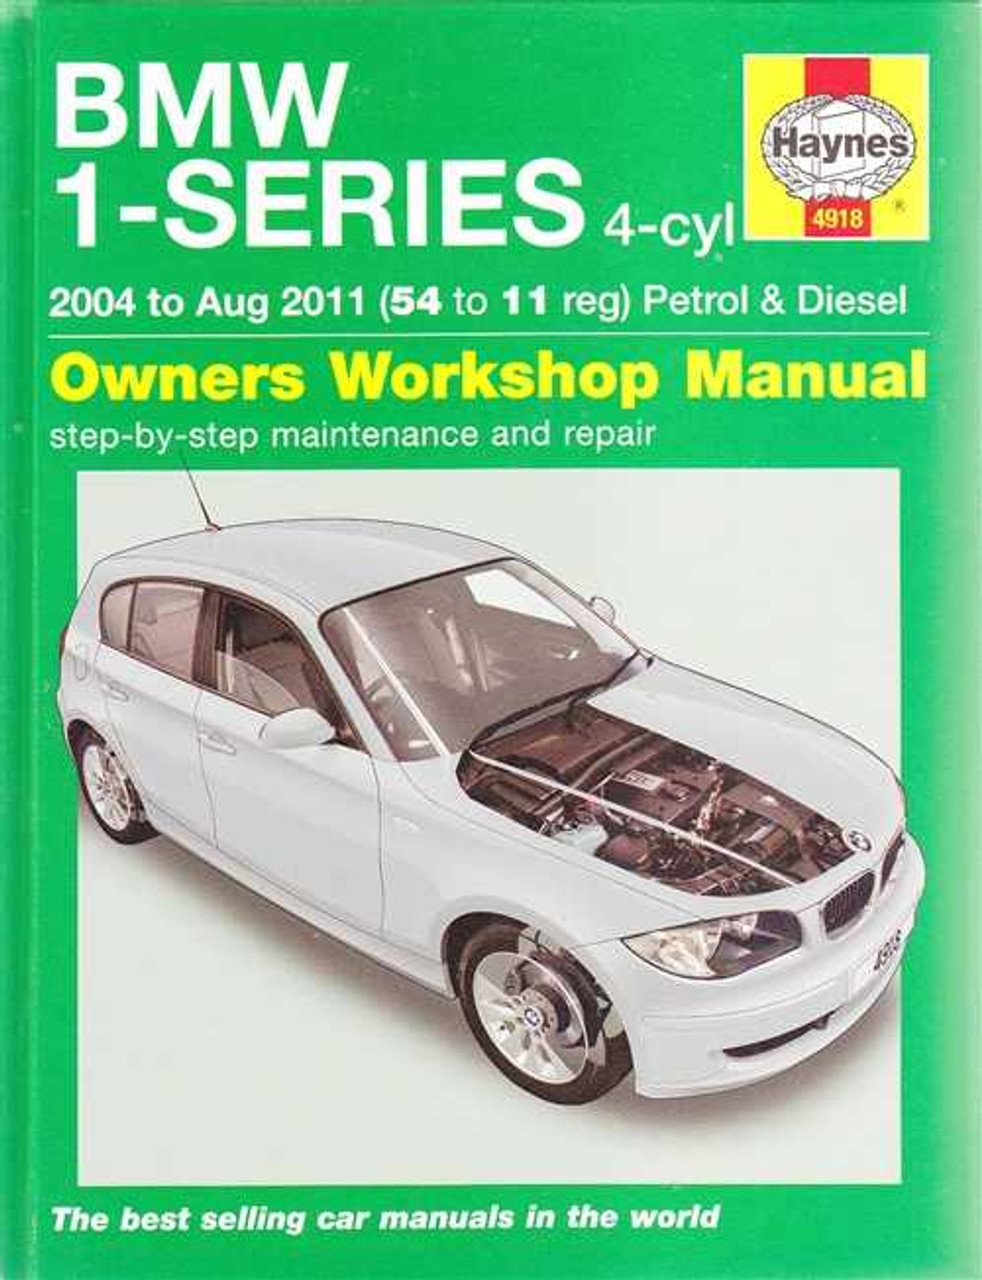 bmw 1 series e81 e87 e82 petrol diesel 2004 2011 workshop manual rh automotobookshop com au bmw 5 series owners manual bmw 5 series owners manual 2017